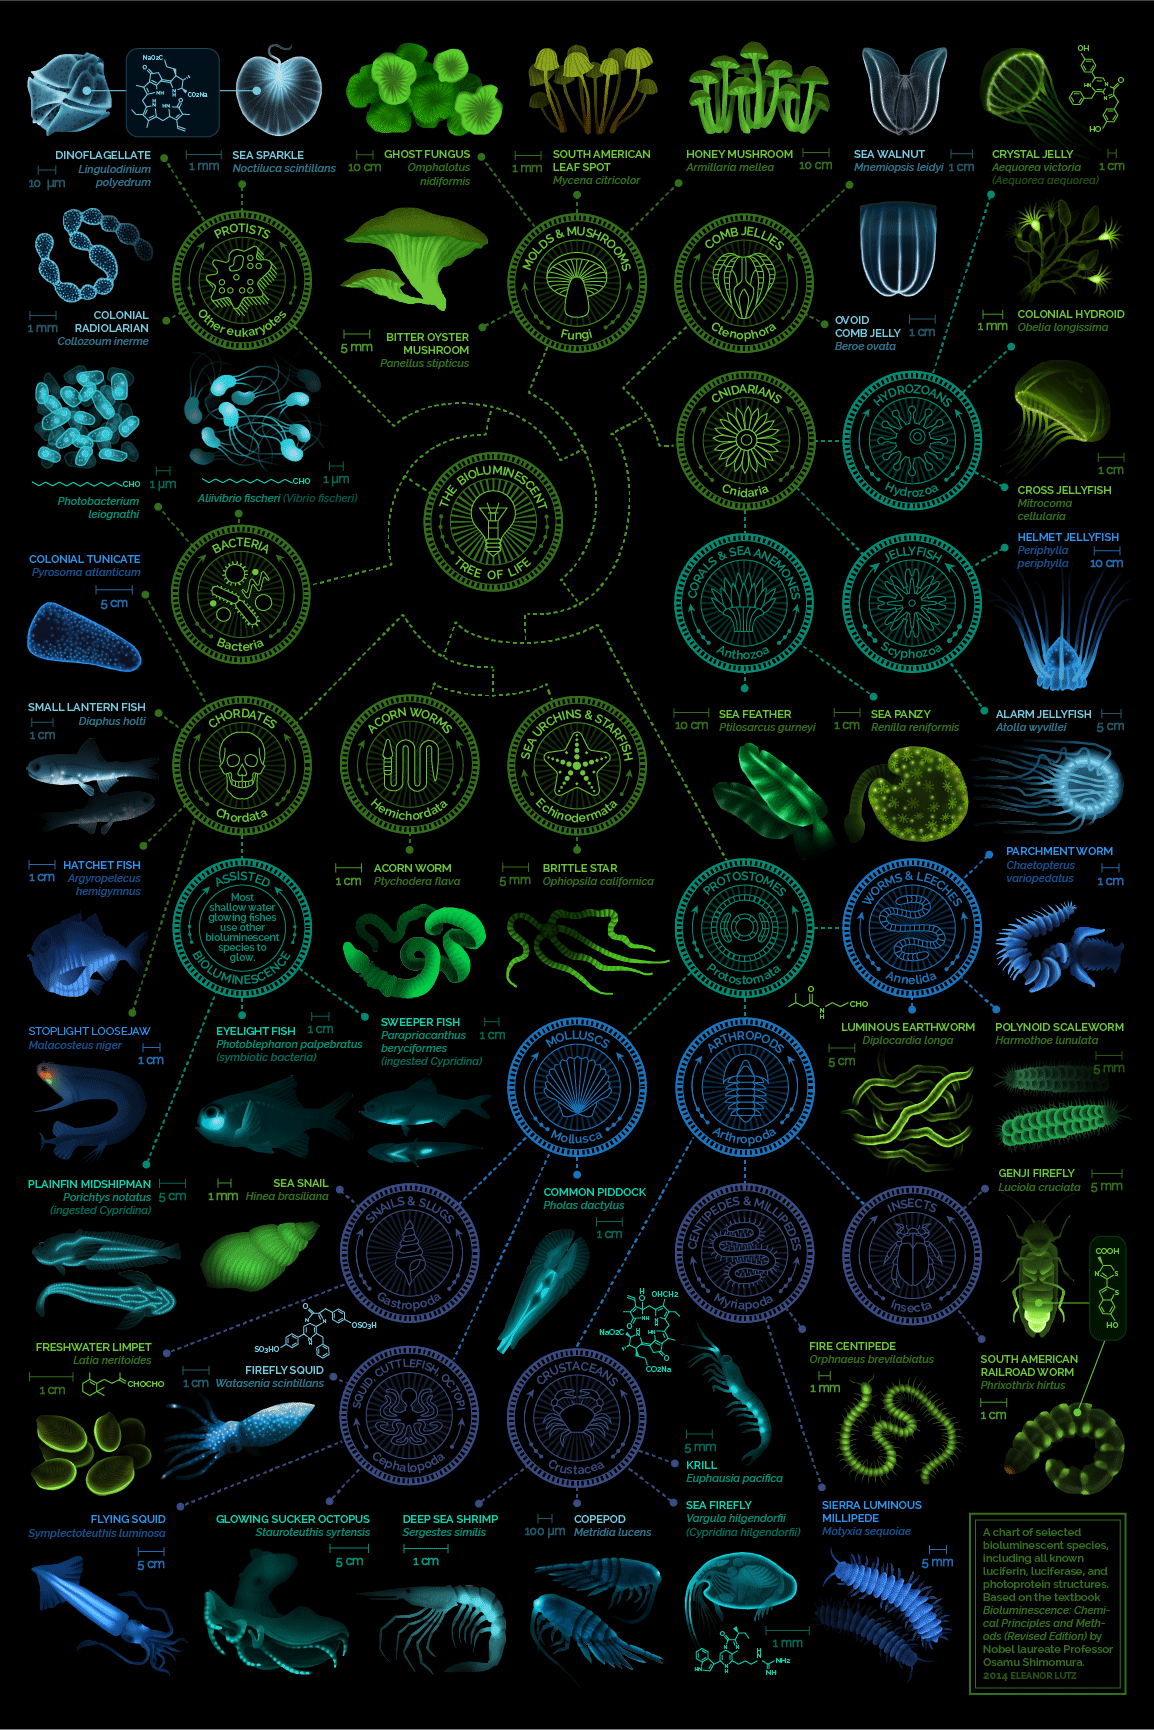 visual-compendium-of-glowing-creatures.png